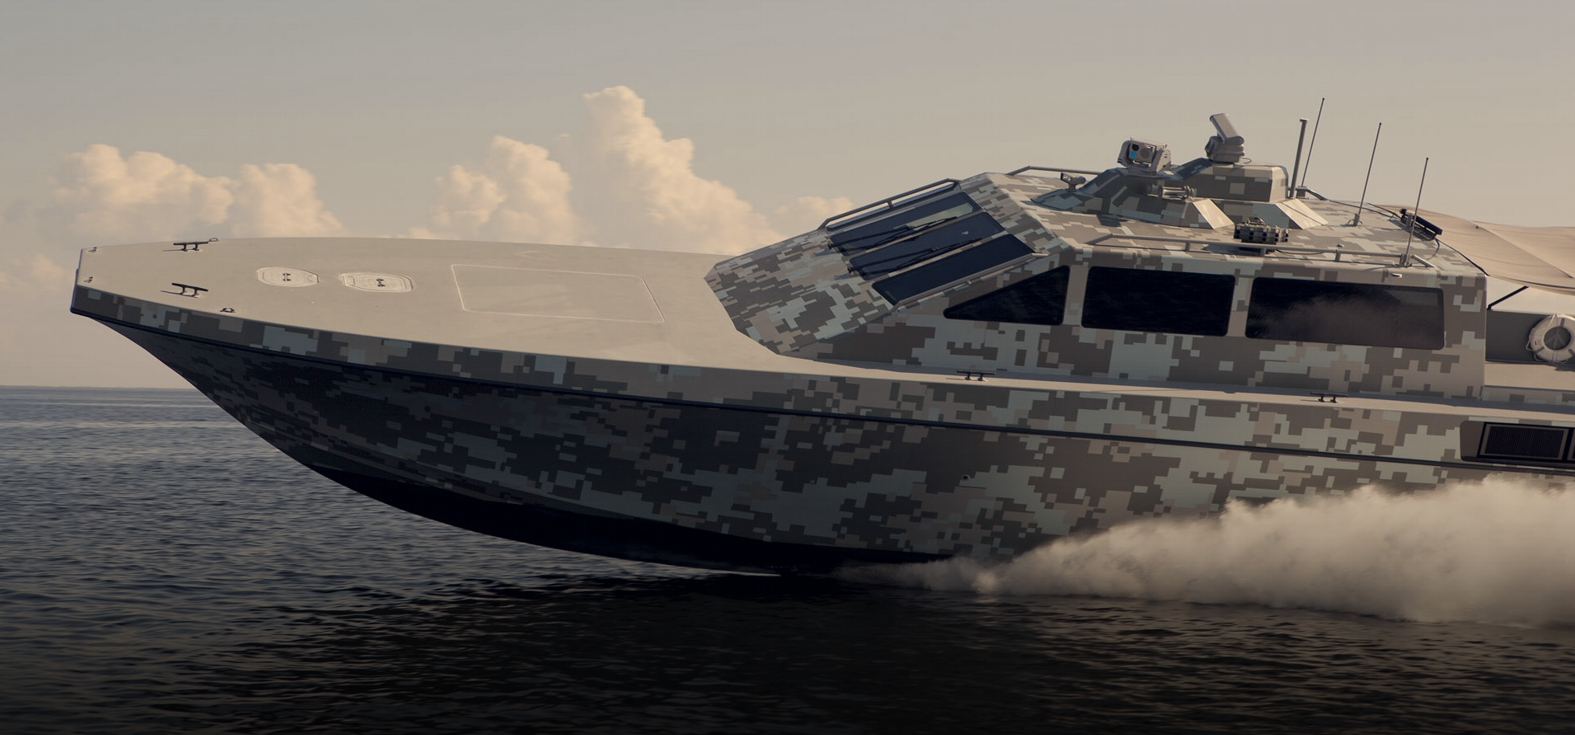 MILITARY & GOVERNMENT PATROL BOATS